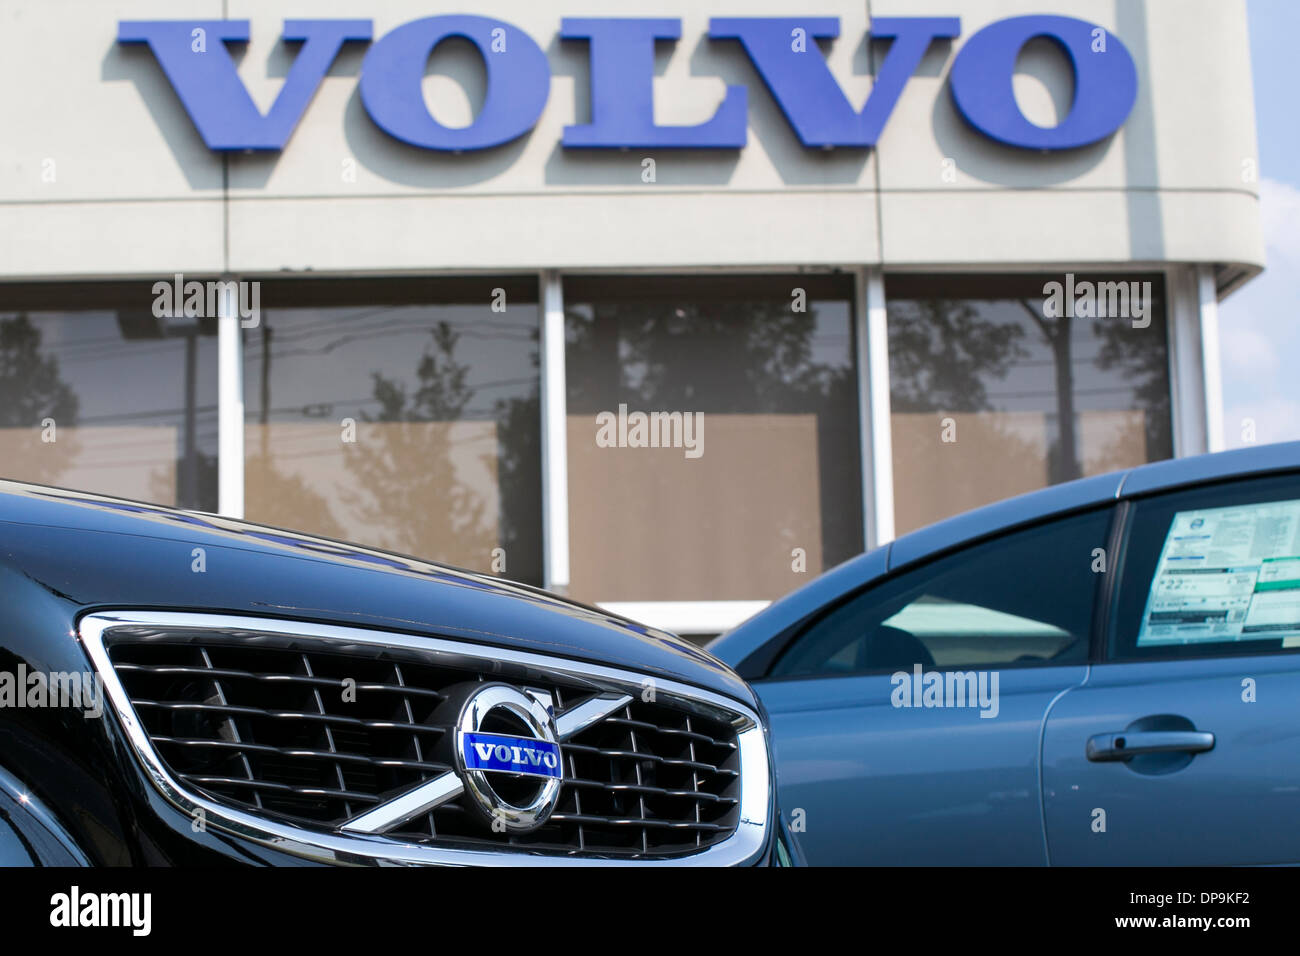 twitter volvonorthmiami north dealer retweets like miami of volvo replies